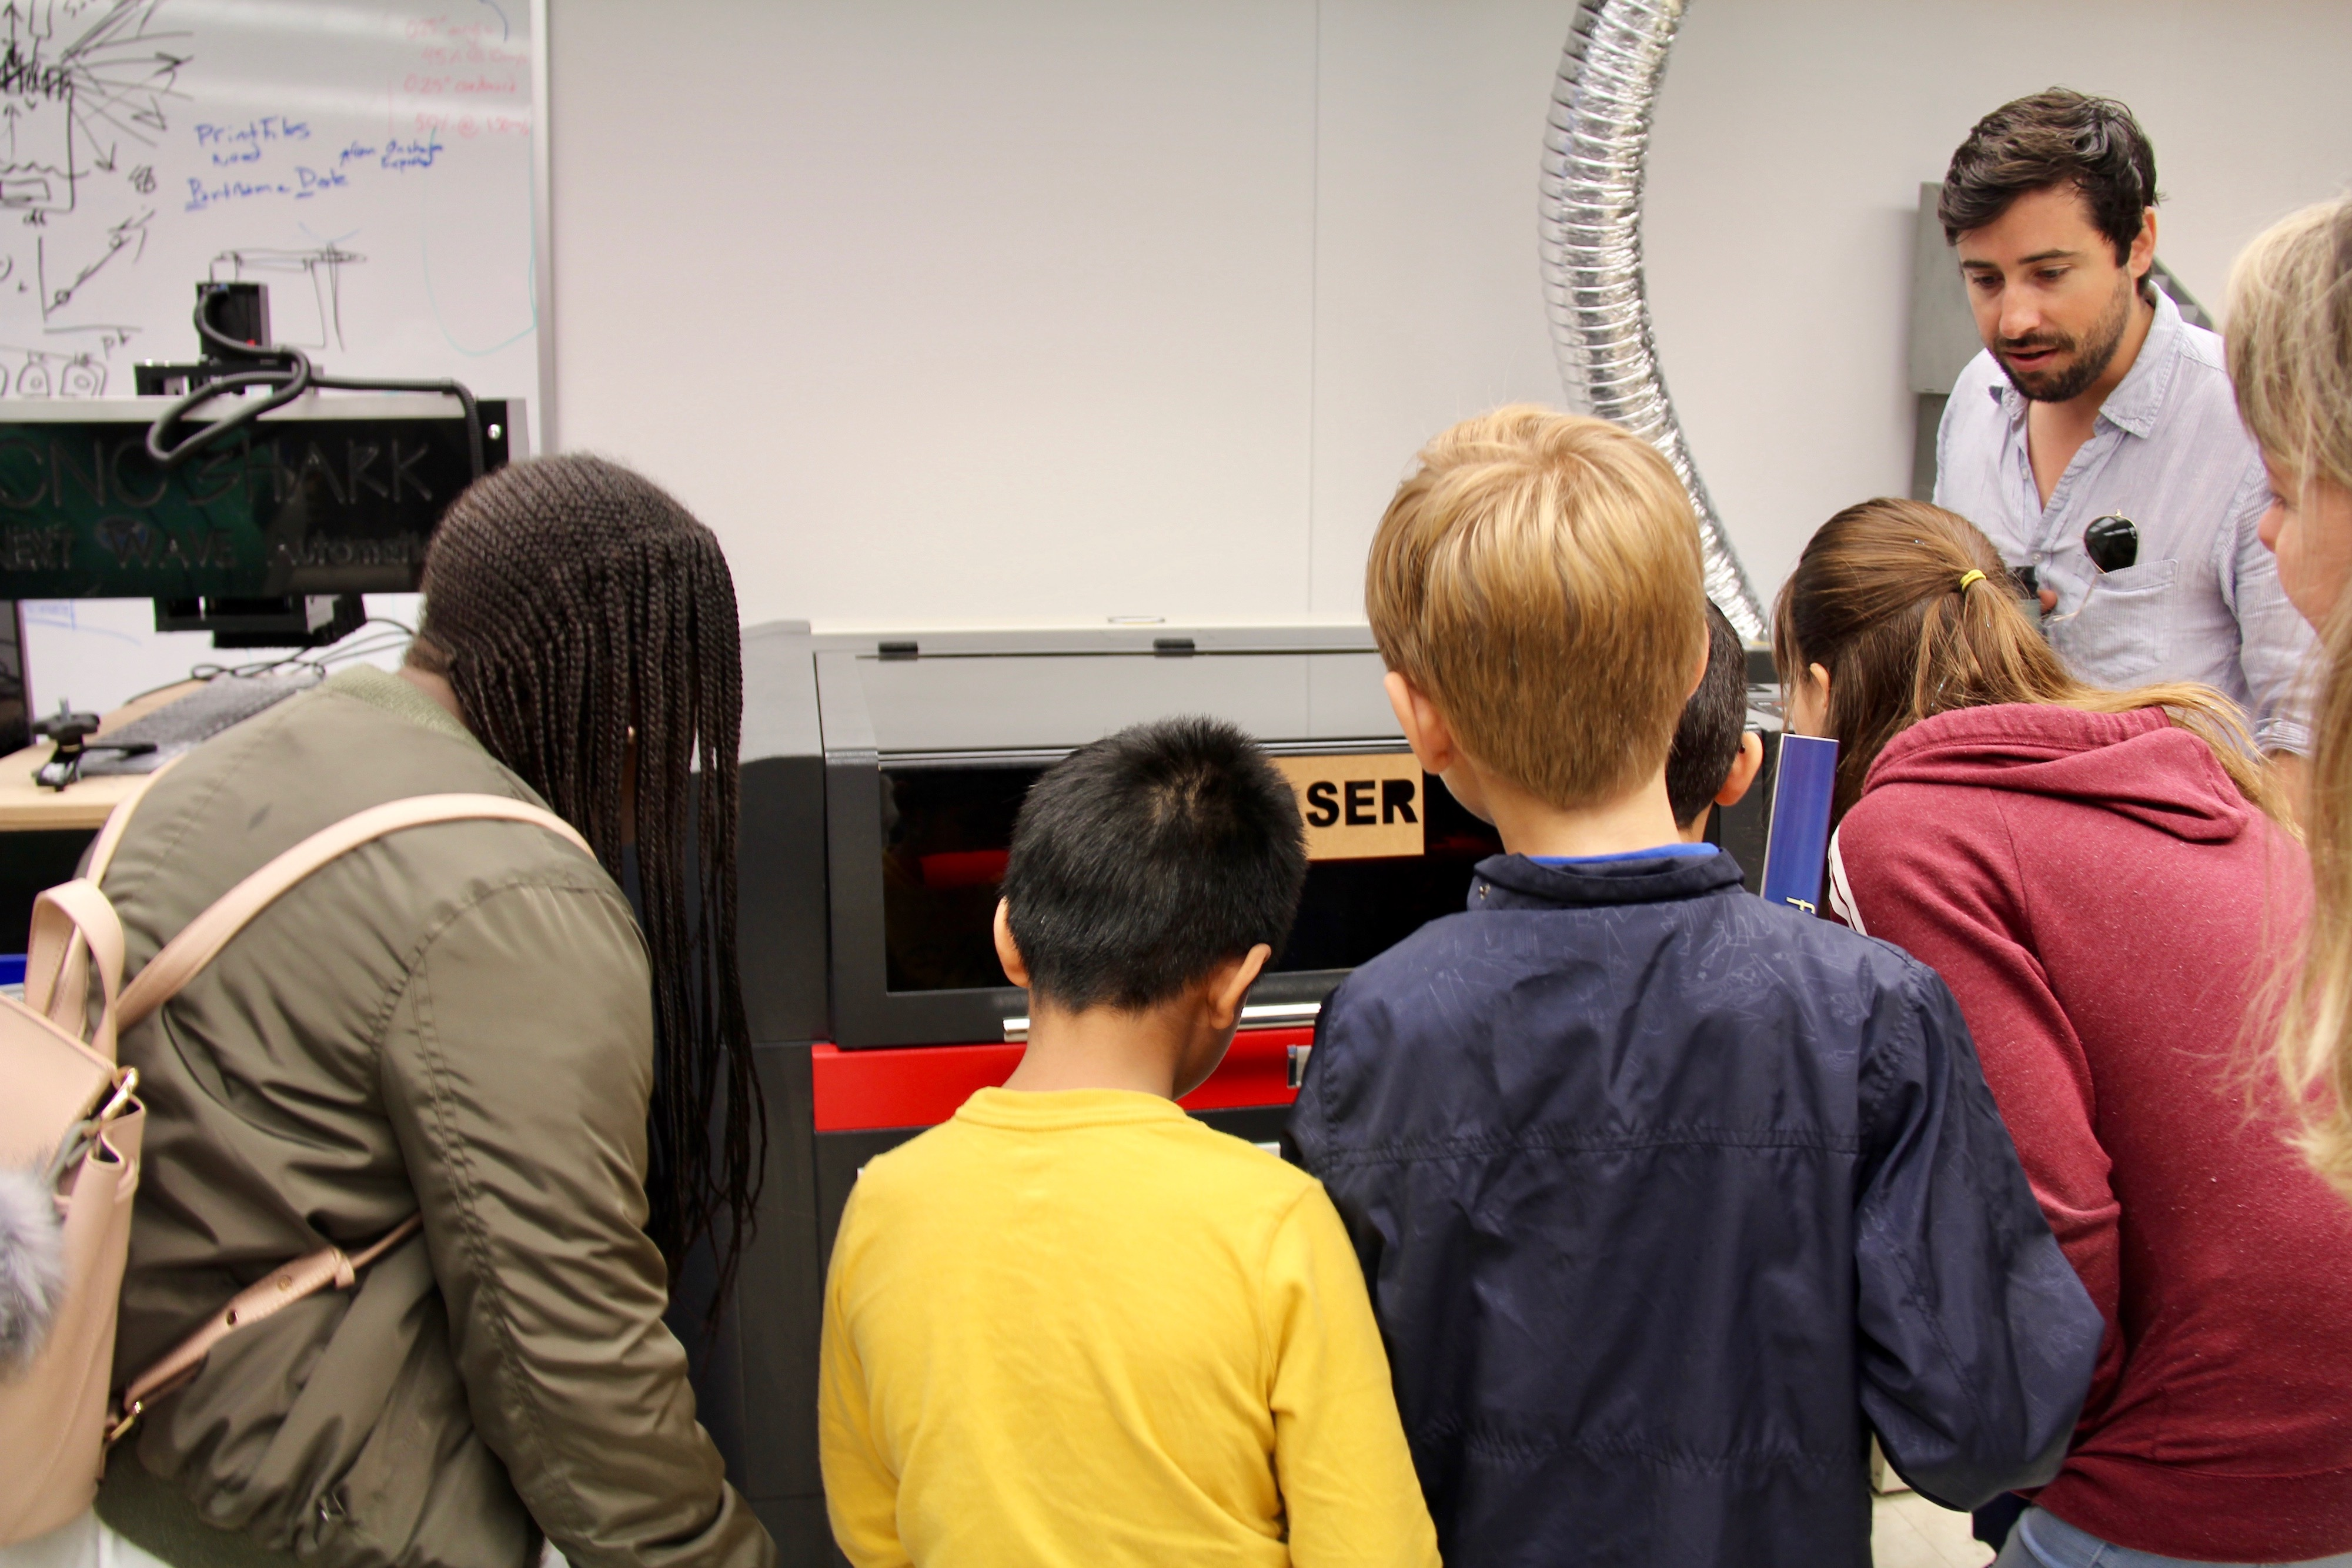 For the first time, the kids were shown the advanced manufacturing lab, where scientists use the laser cutter and 3D printer to customize their lab equipment. Image credit: NOAA